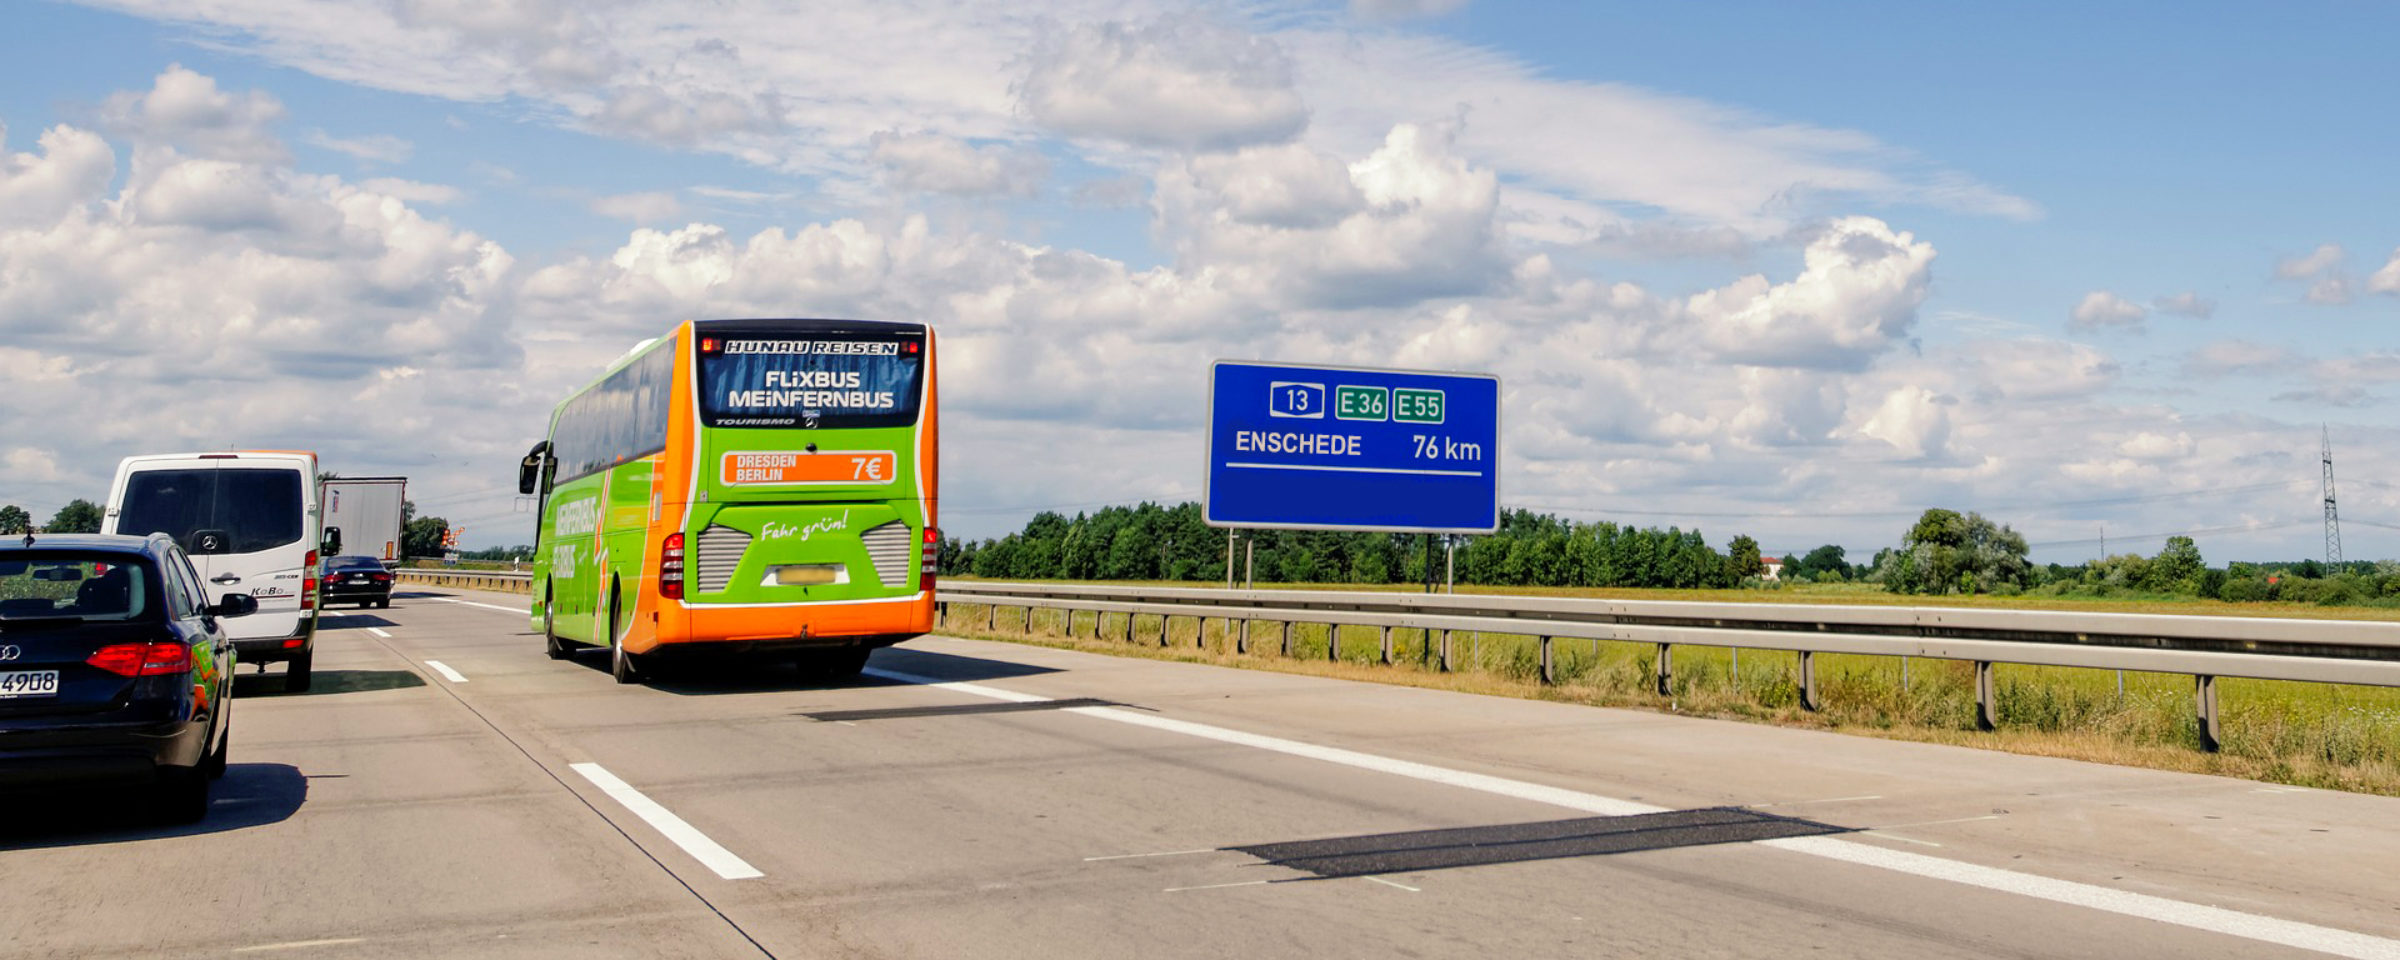 From Amsterdam to Enschede